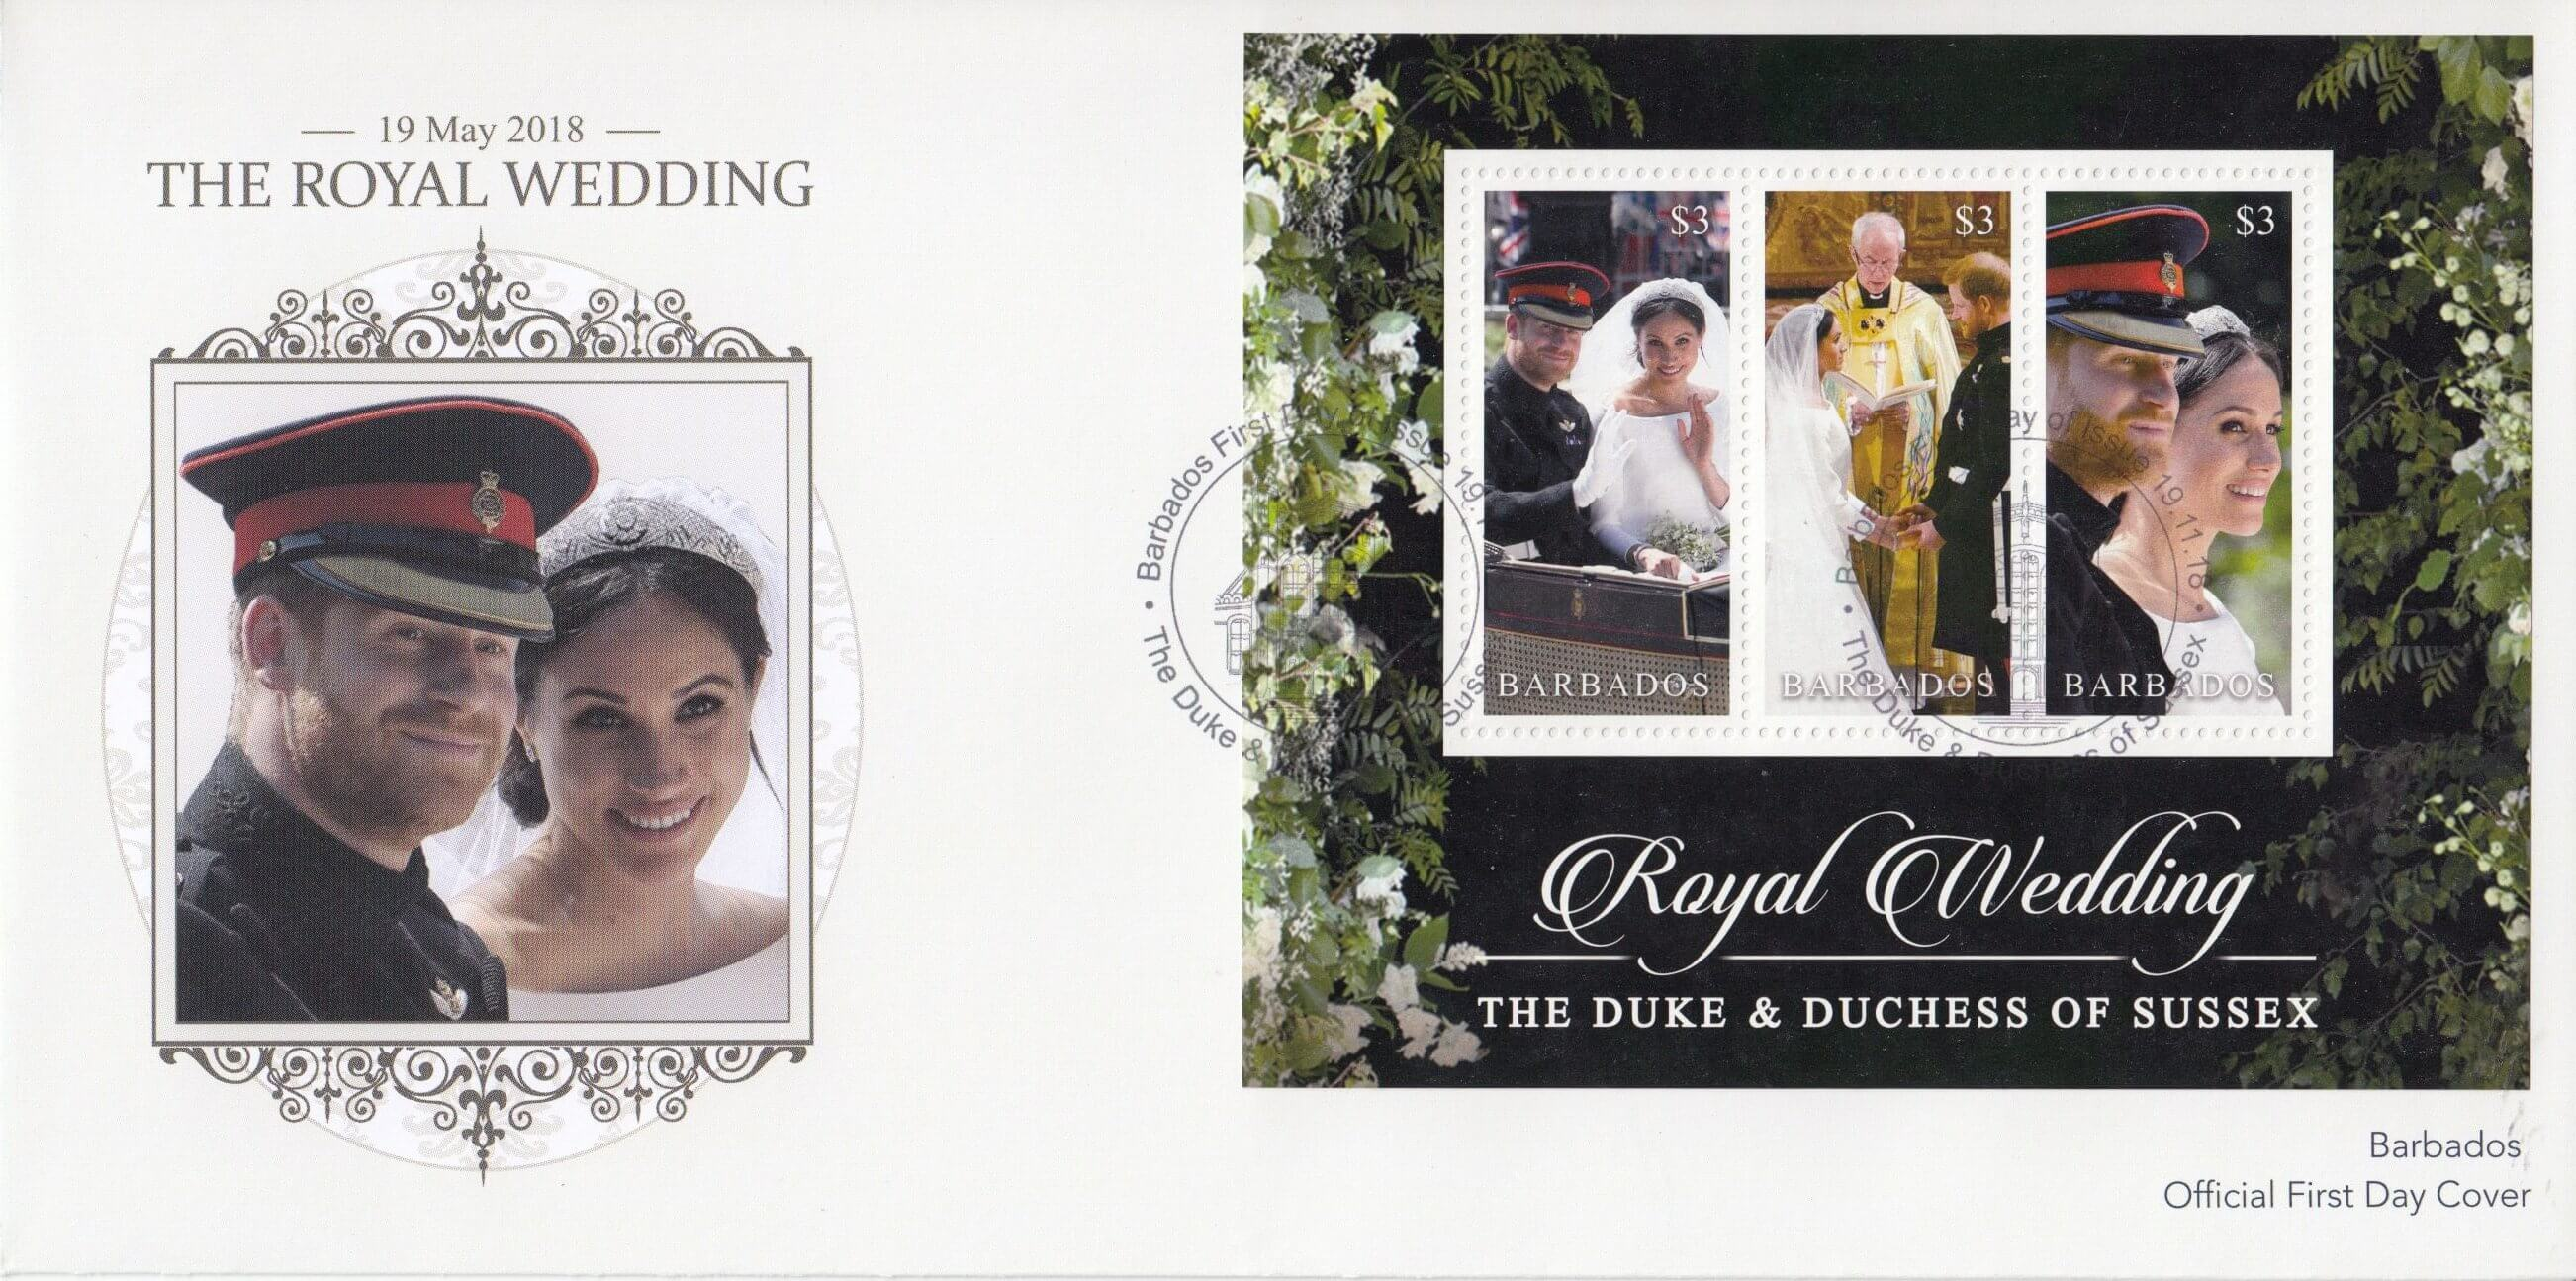 Barbados Stamps first issue of 2018 celebrates the Royal Wedding